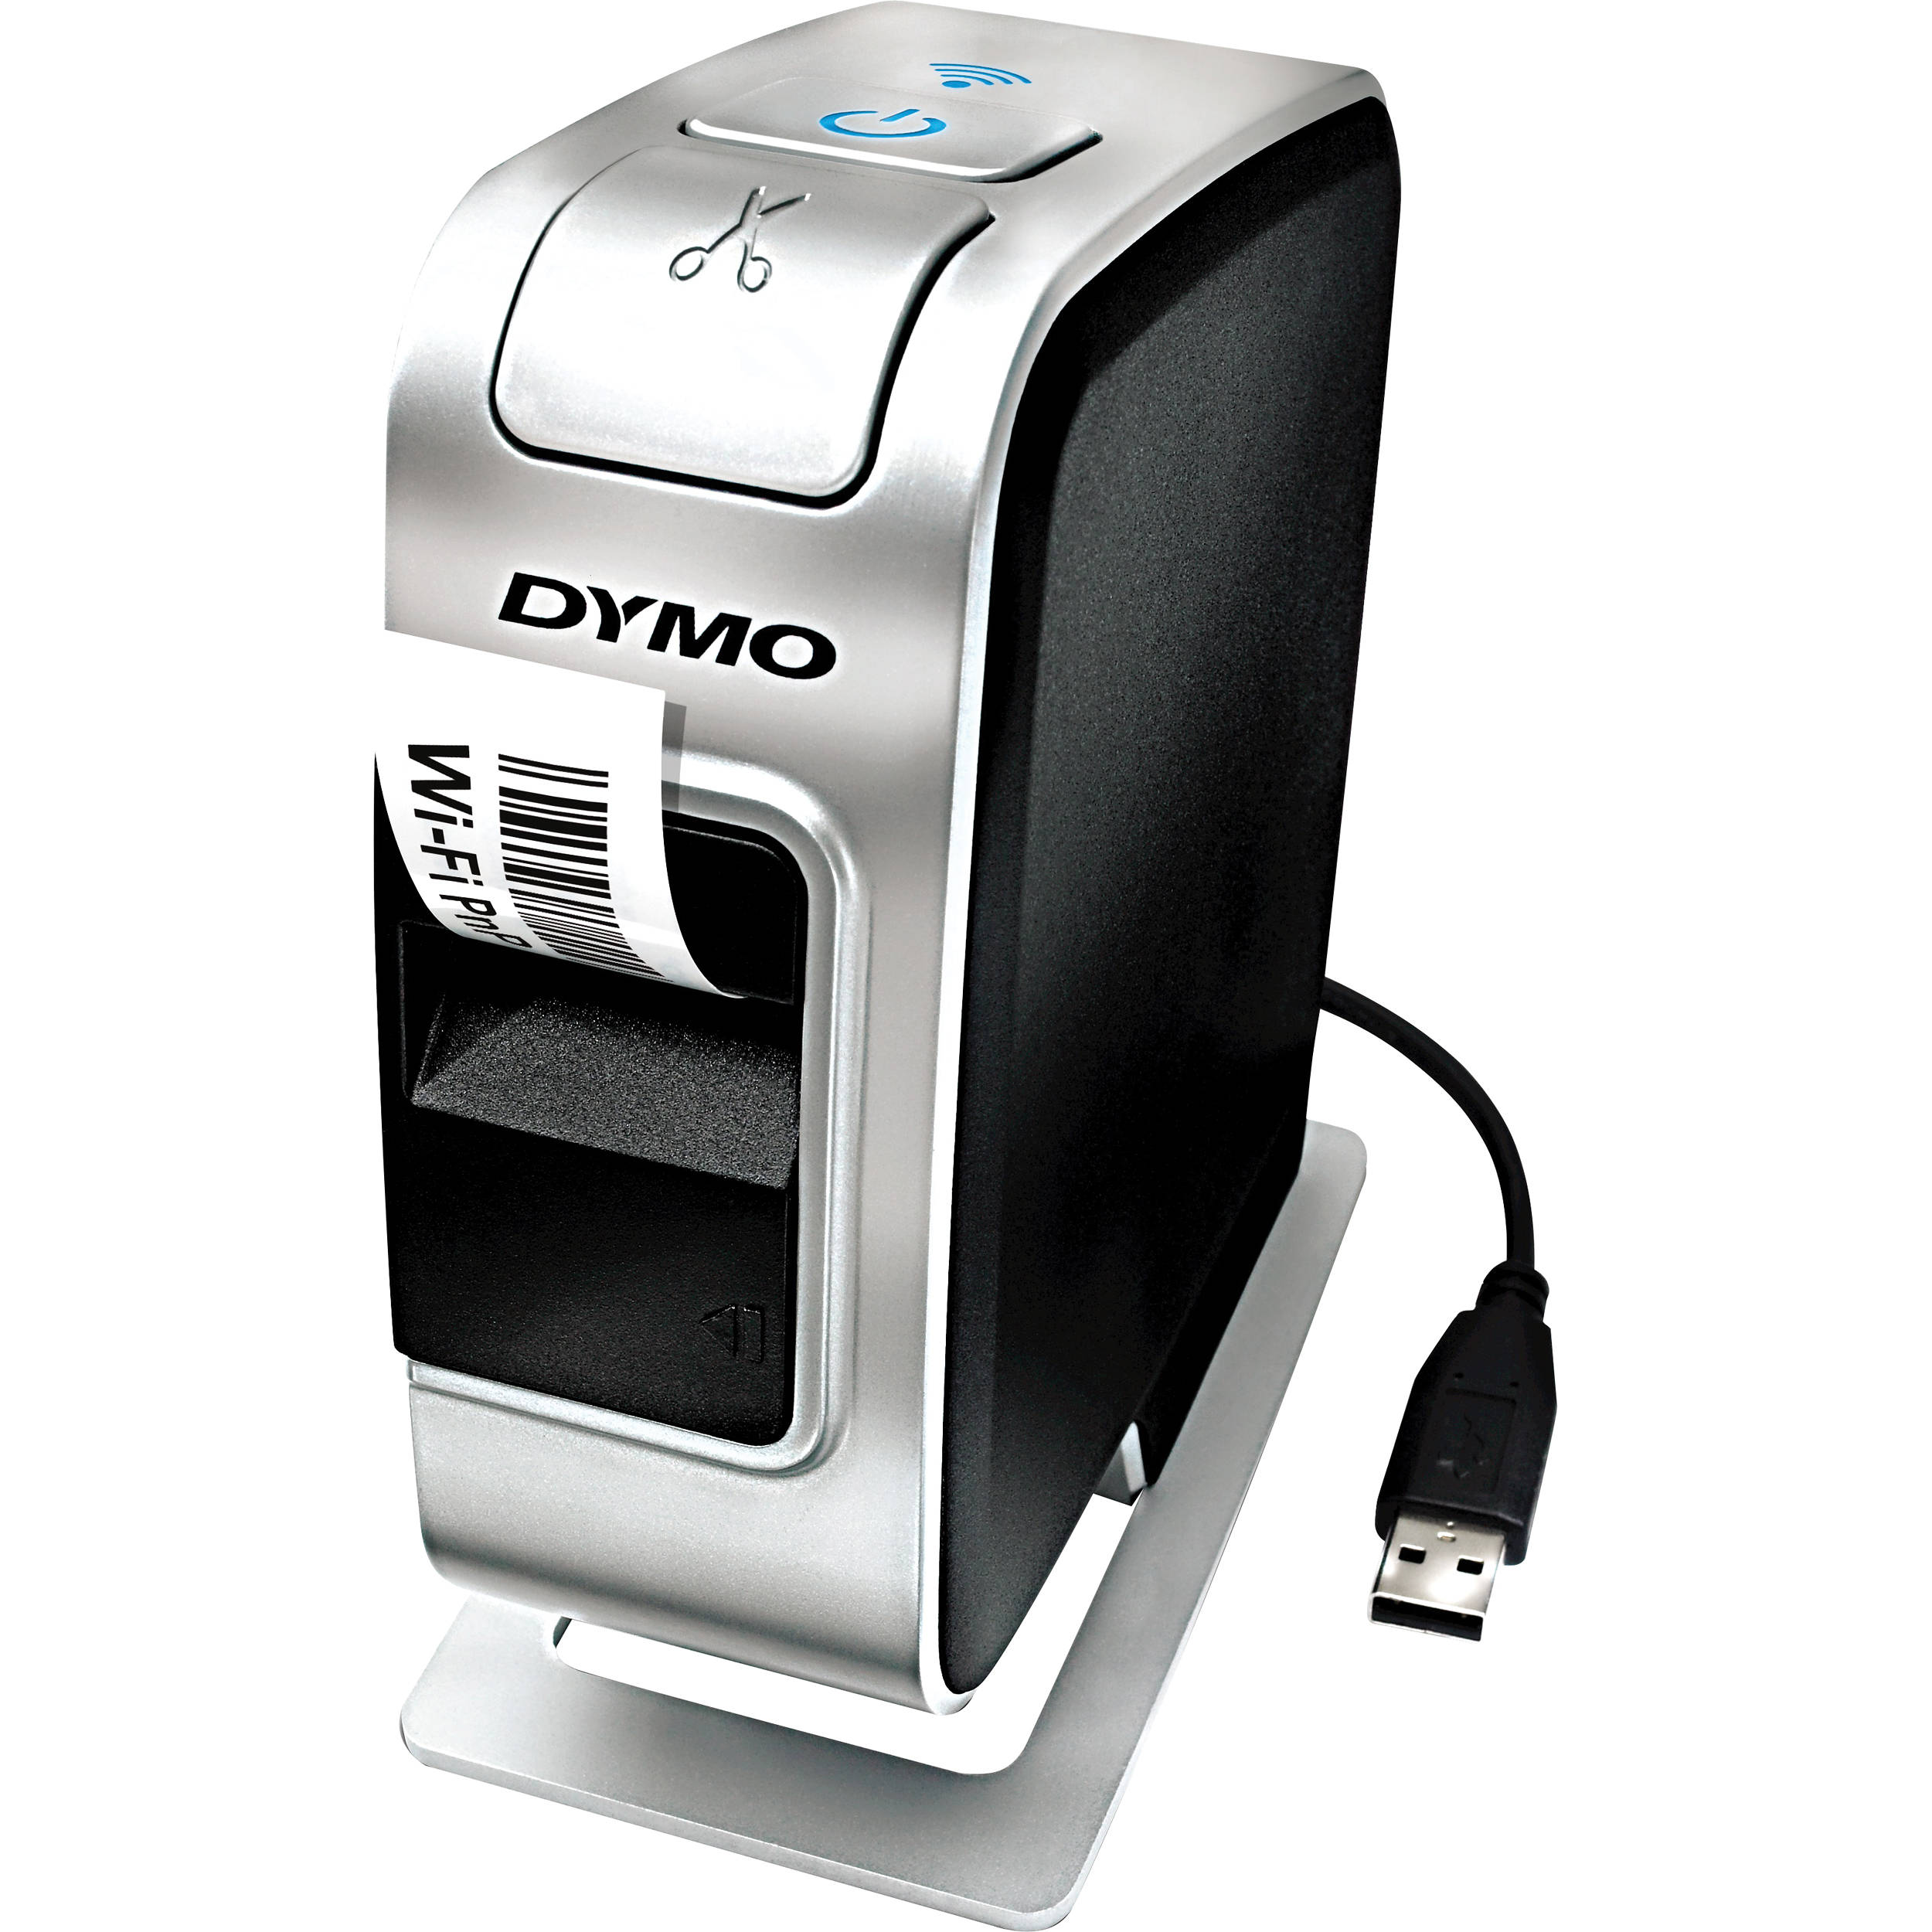 Dymo labelmanager wireless pnp label maker 1812570 bh photo for Dymo custom labels